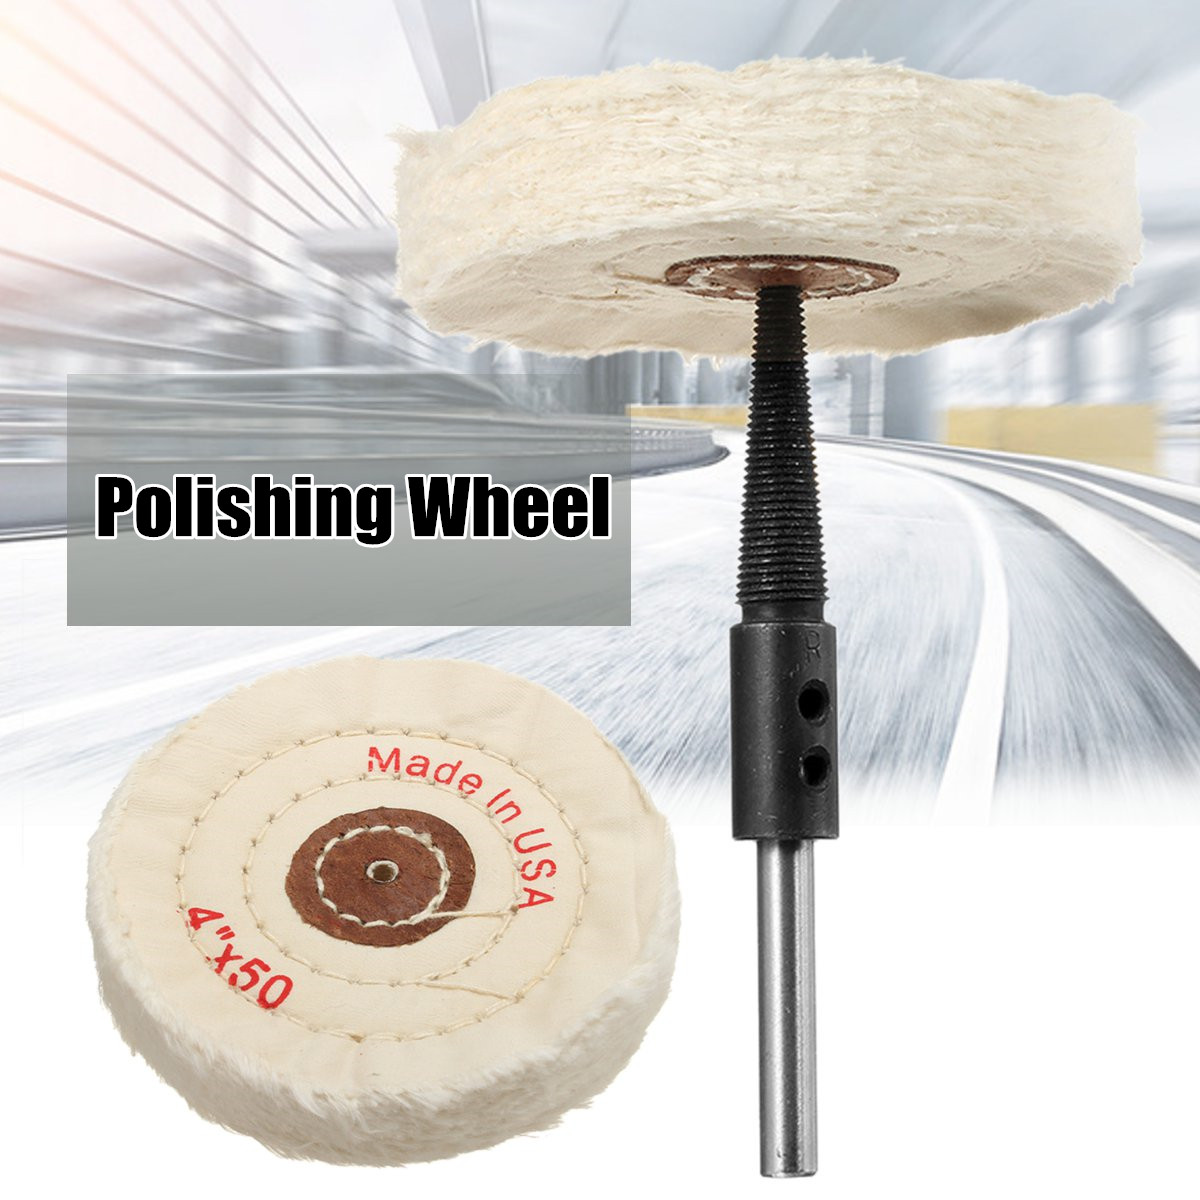 Drillpro 4 Inch Polishing Wheel Adapter Set Felt Wool Changed Electric Drill Into Polishing Machine Abrasive Tools